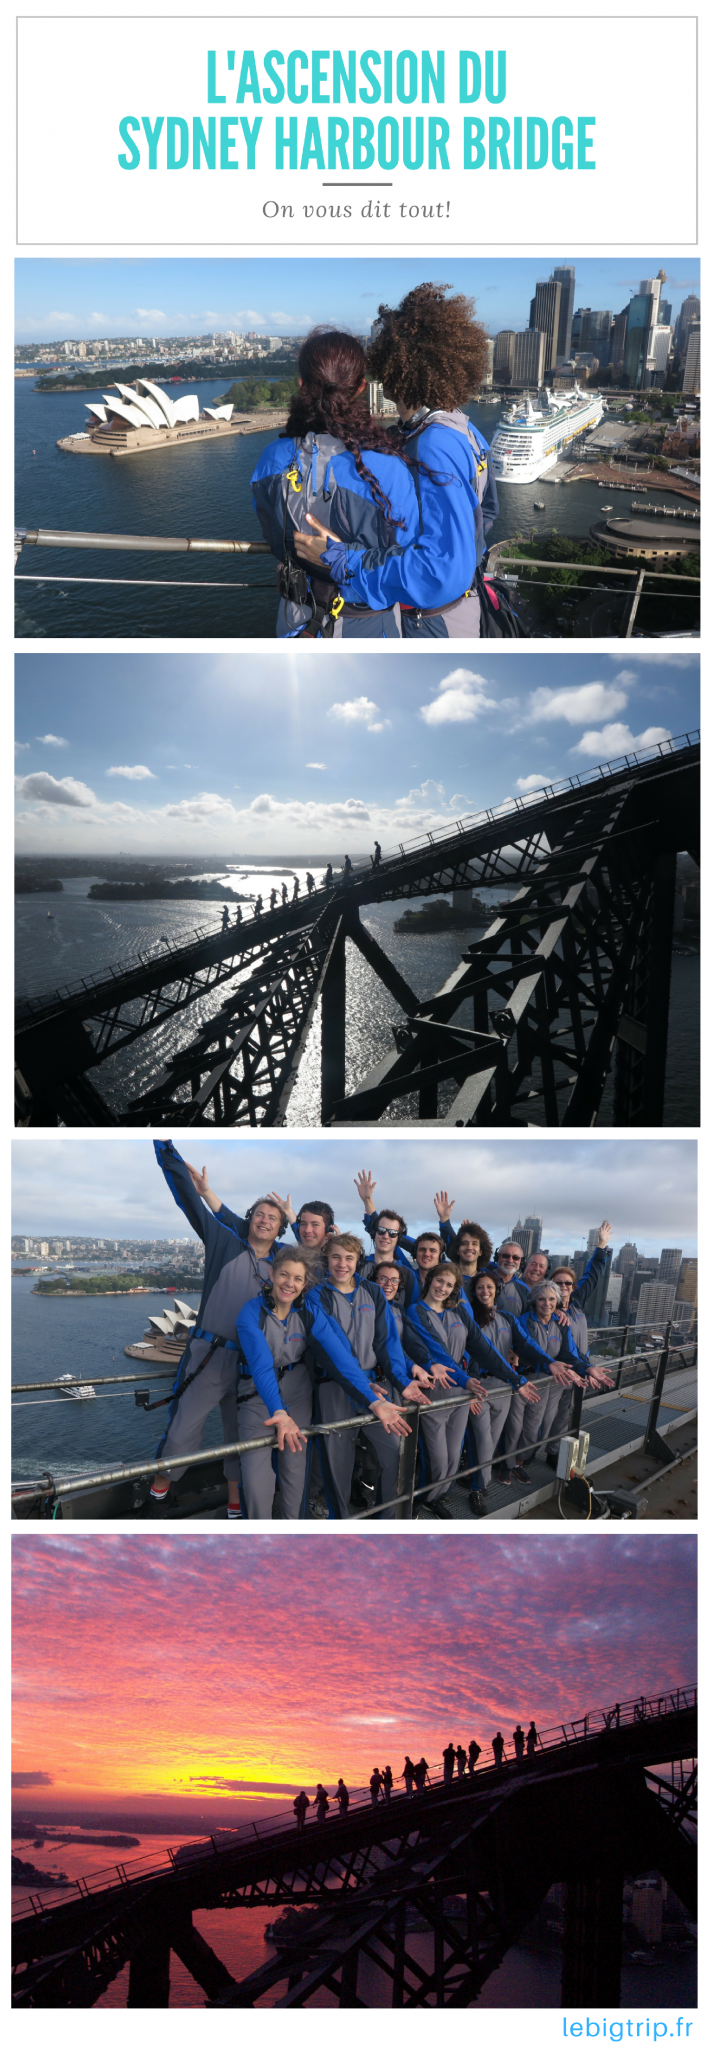 Ascension du Sydney Harbour Bridge